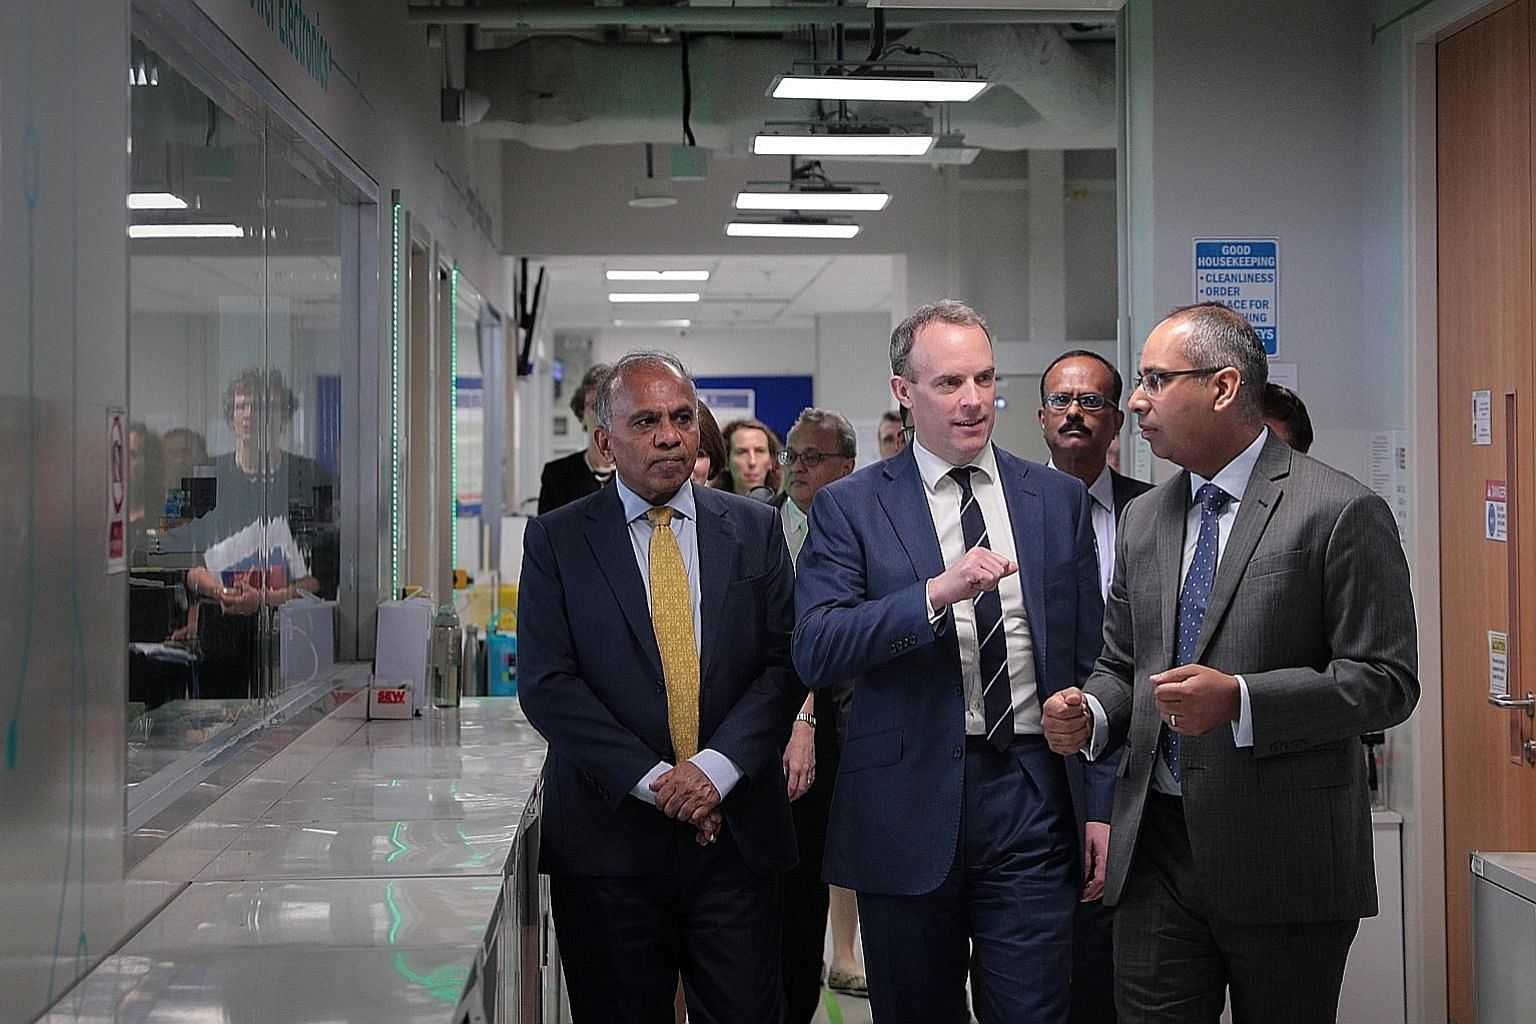 British Foreign Secretary Dominic Raab (centre) touring the Rolls-Royce corporate laboratory at Nanyang Technological University yesterday, flanked by Dr Bicky Bhangu (right), Rolls-Royce president for South-east Asia, Pacific and South Korea, and Pr